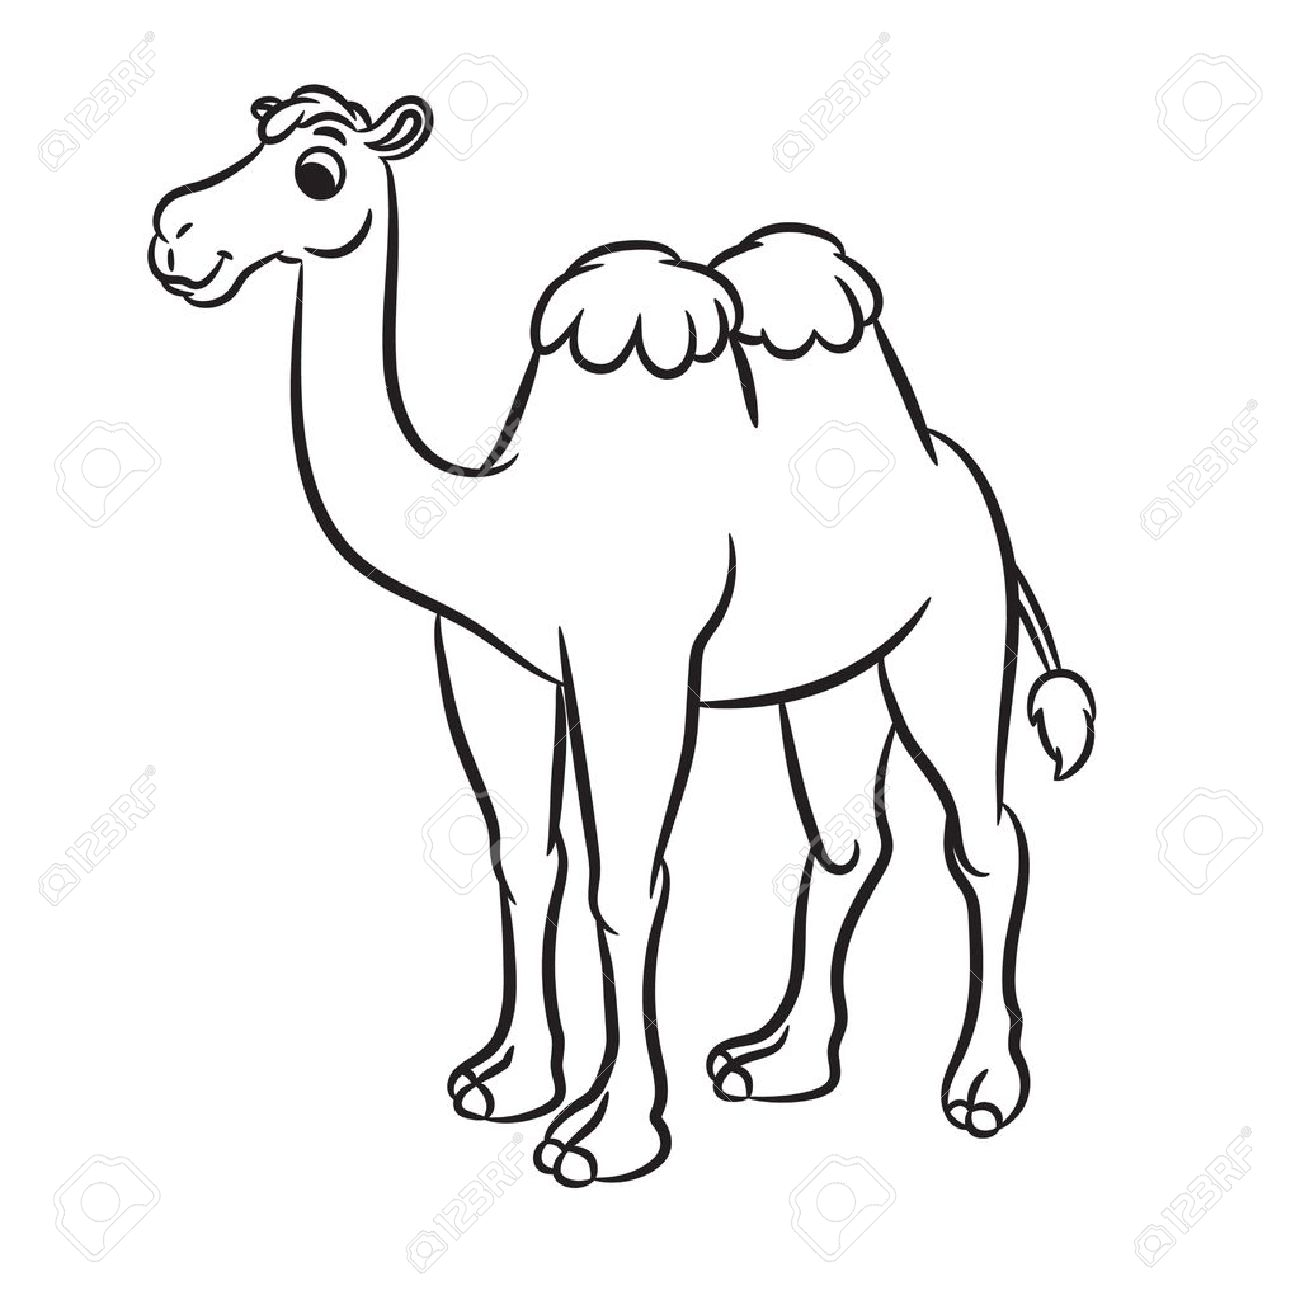 Camel Clipart Black And White Camel Black And White